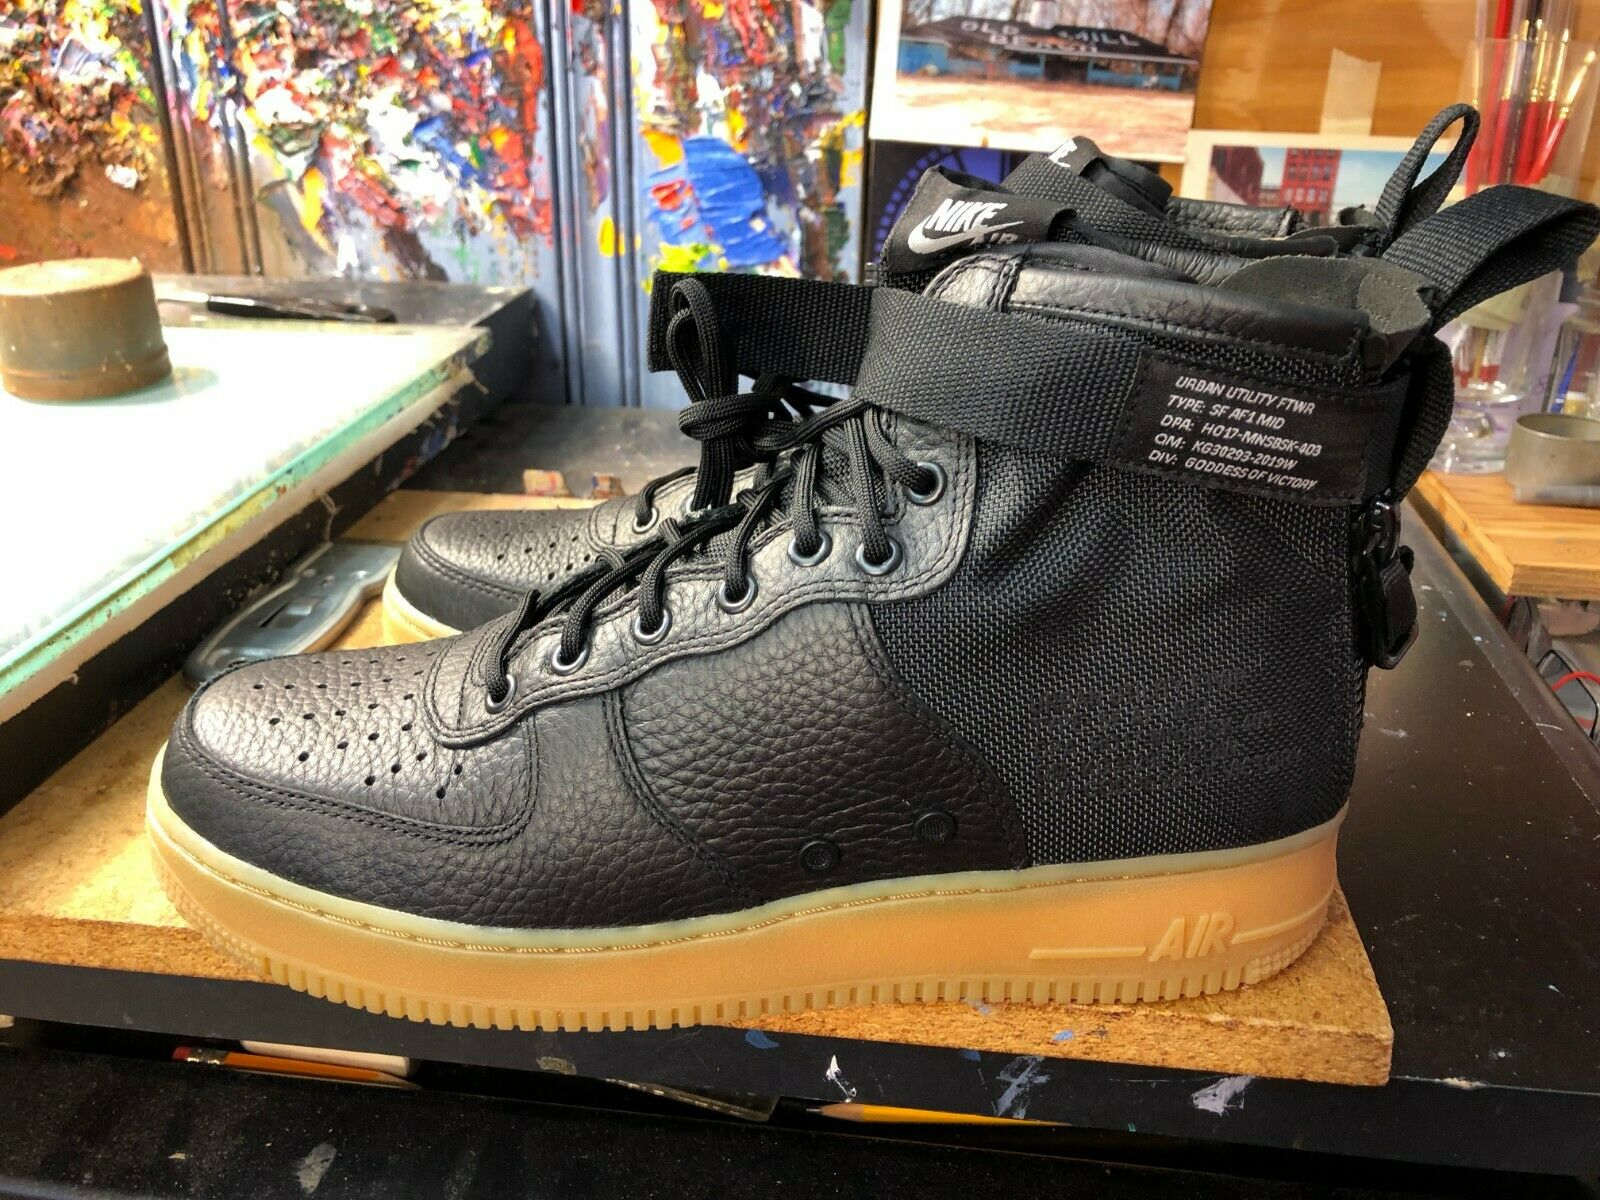 bc7965c9a1eb Nike SF AF1 Mid Black Gum Light Brown Brown Brown Size US 12 Men s 917753  003